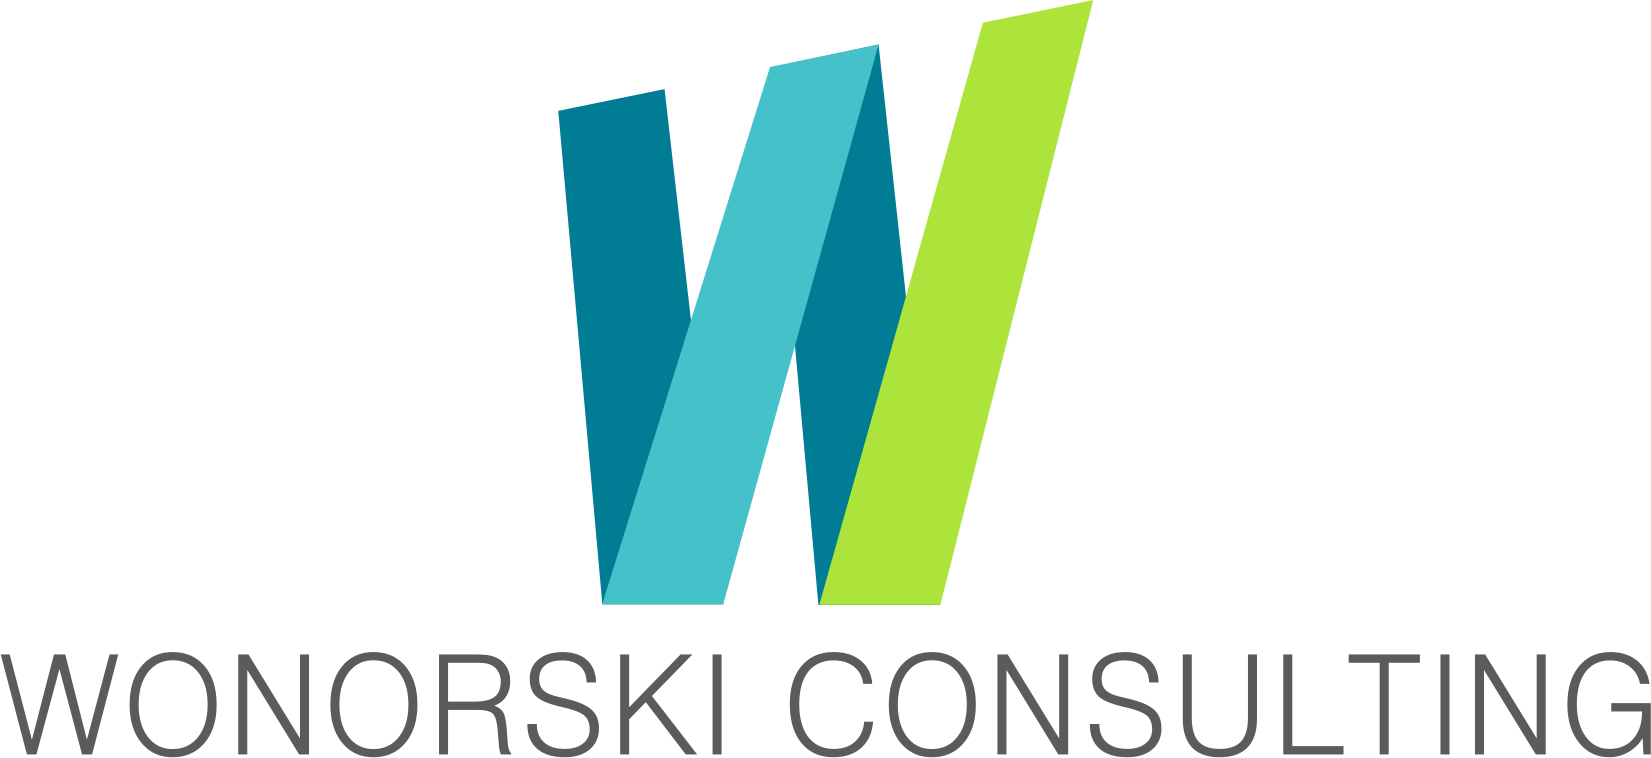 Wonorski Consulting